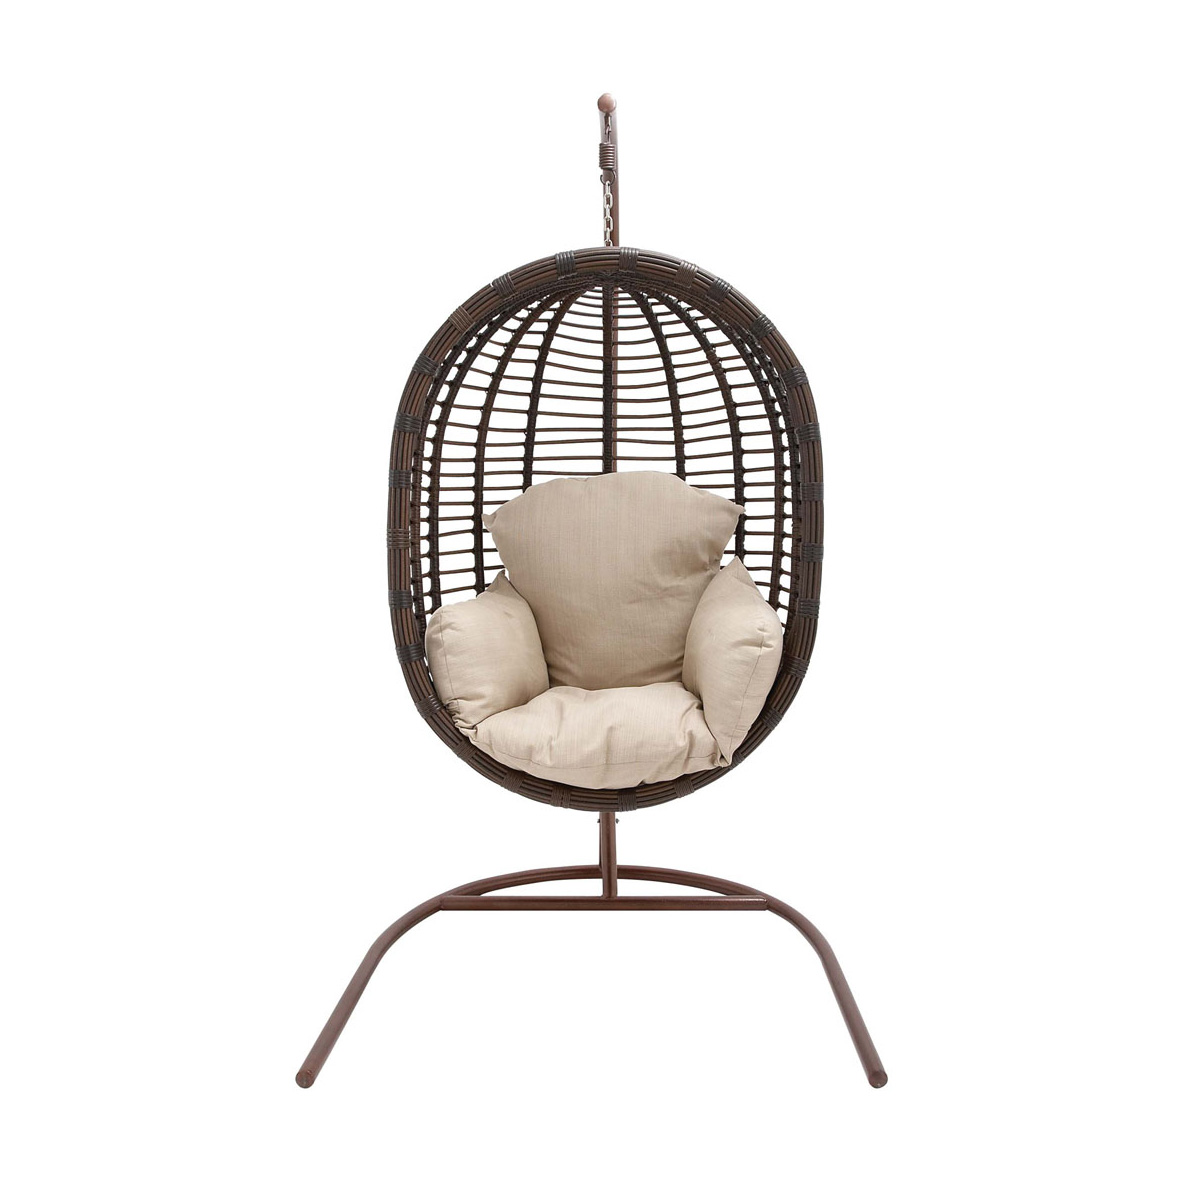 Hanover Outdoor Wicker Rattan Hanging Egg Chair Swing With Bold Stripe  Pattern